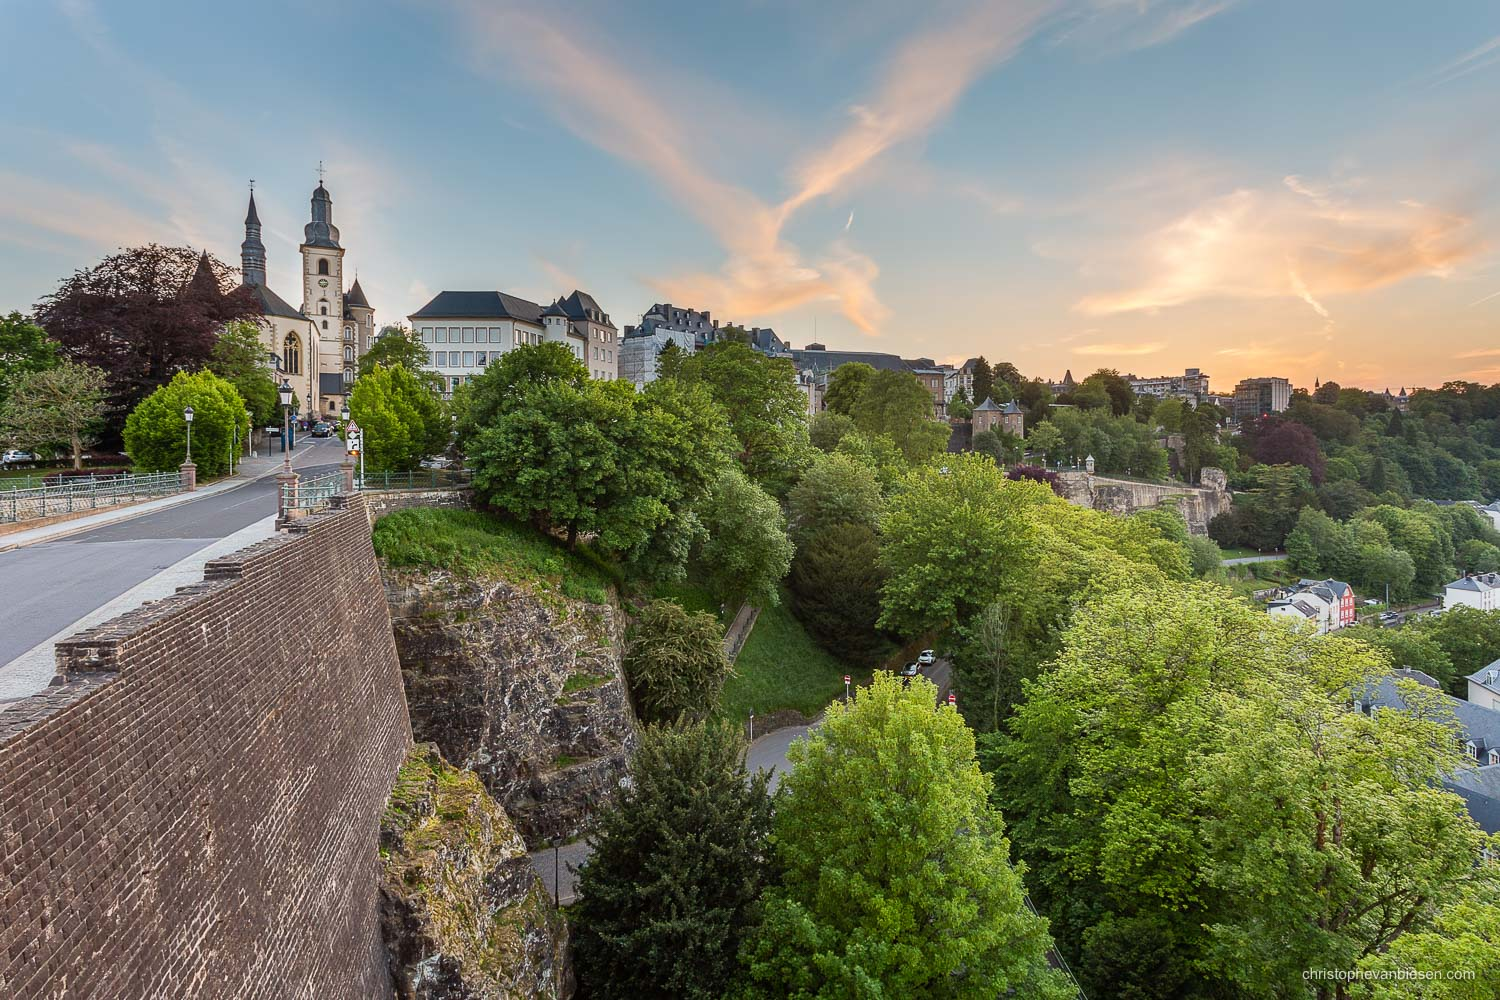 Summer in Luxembourg - Luxembourg's Saint Michael's Church on top of of the fortress that divides Grund and Pfaffenthal - Atop the Valley